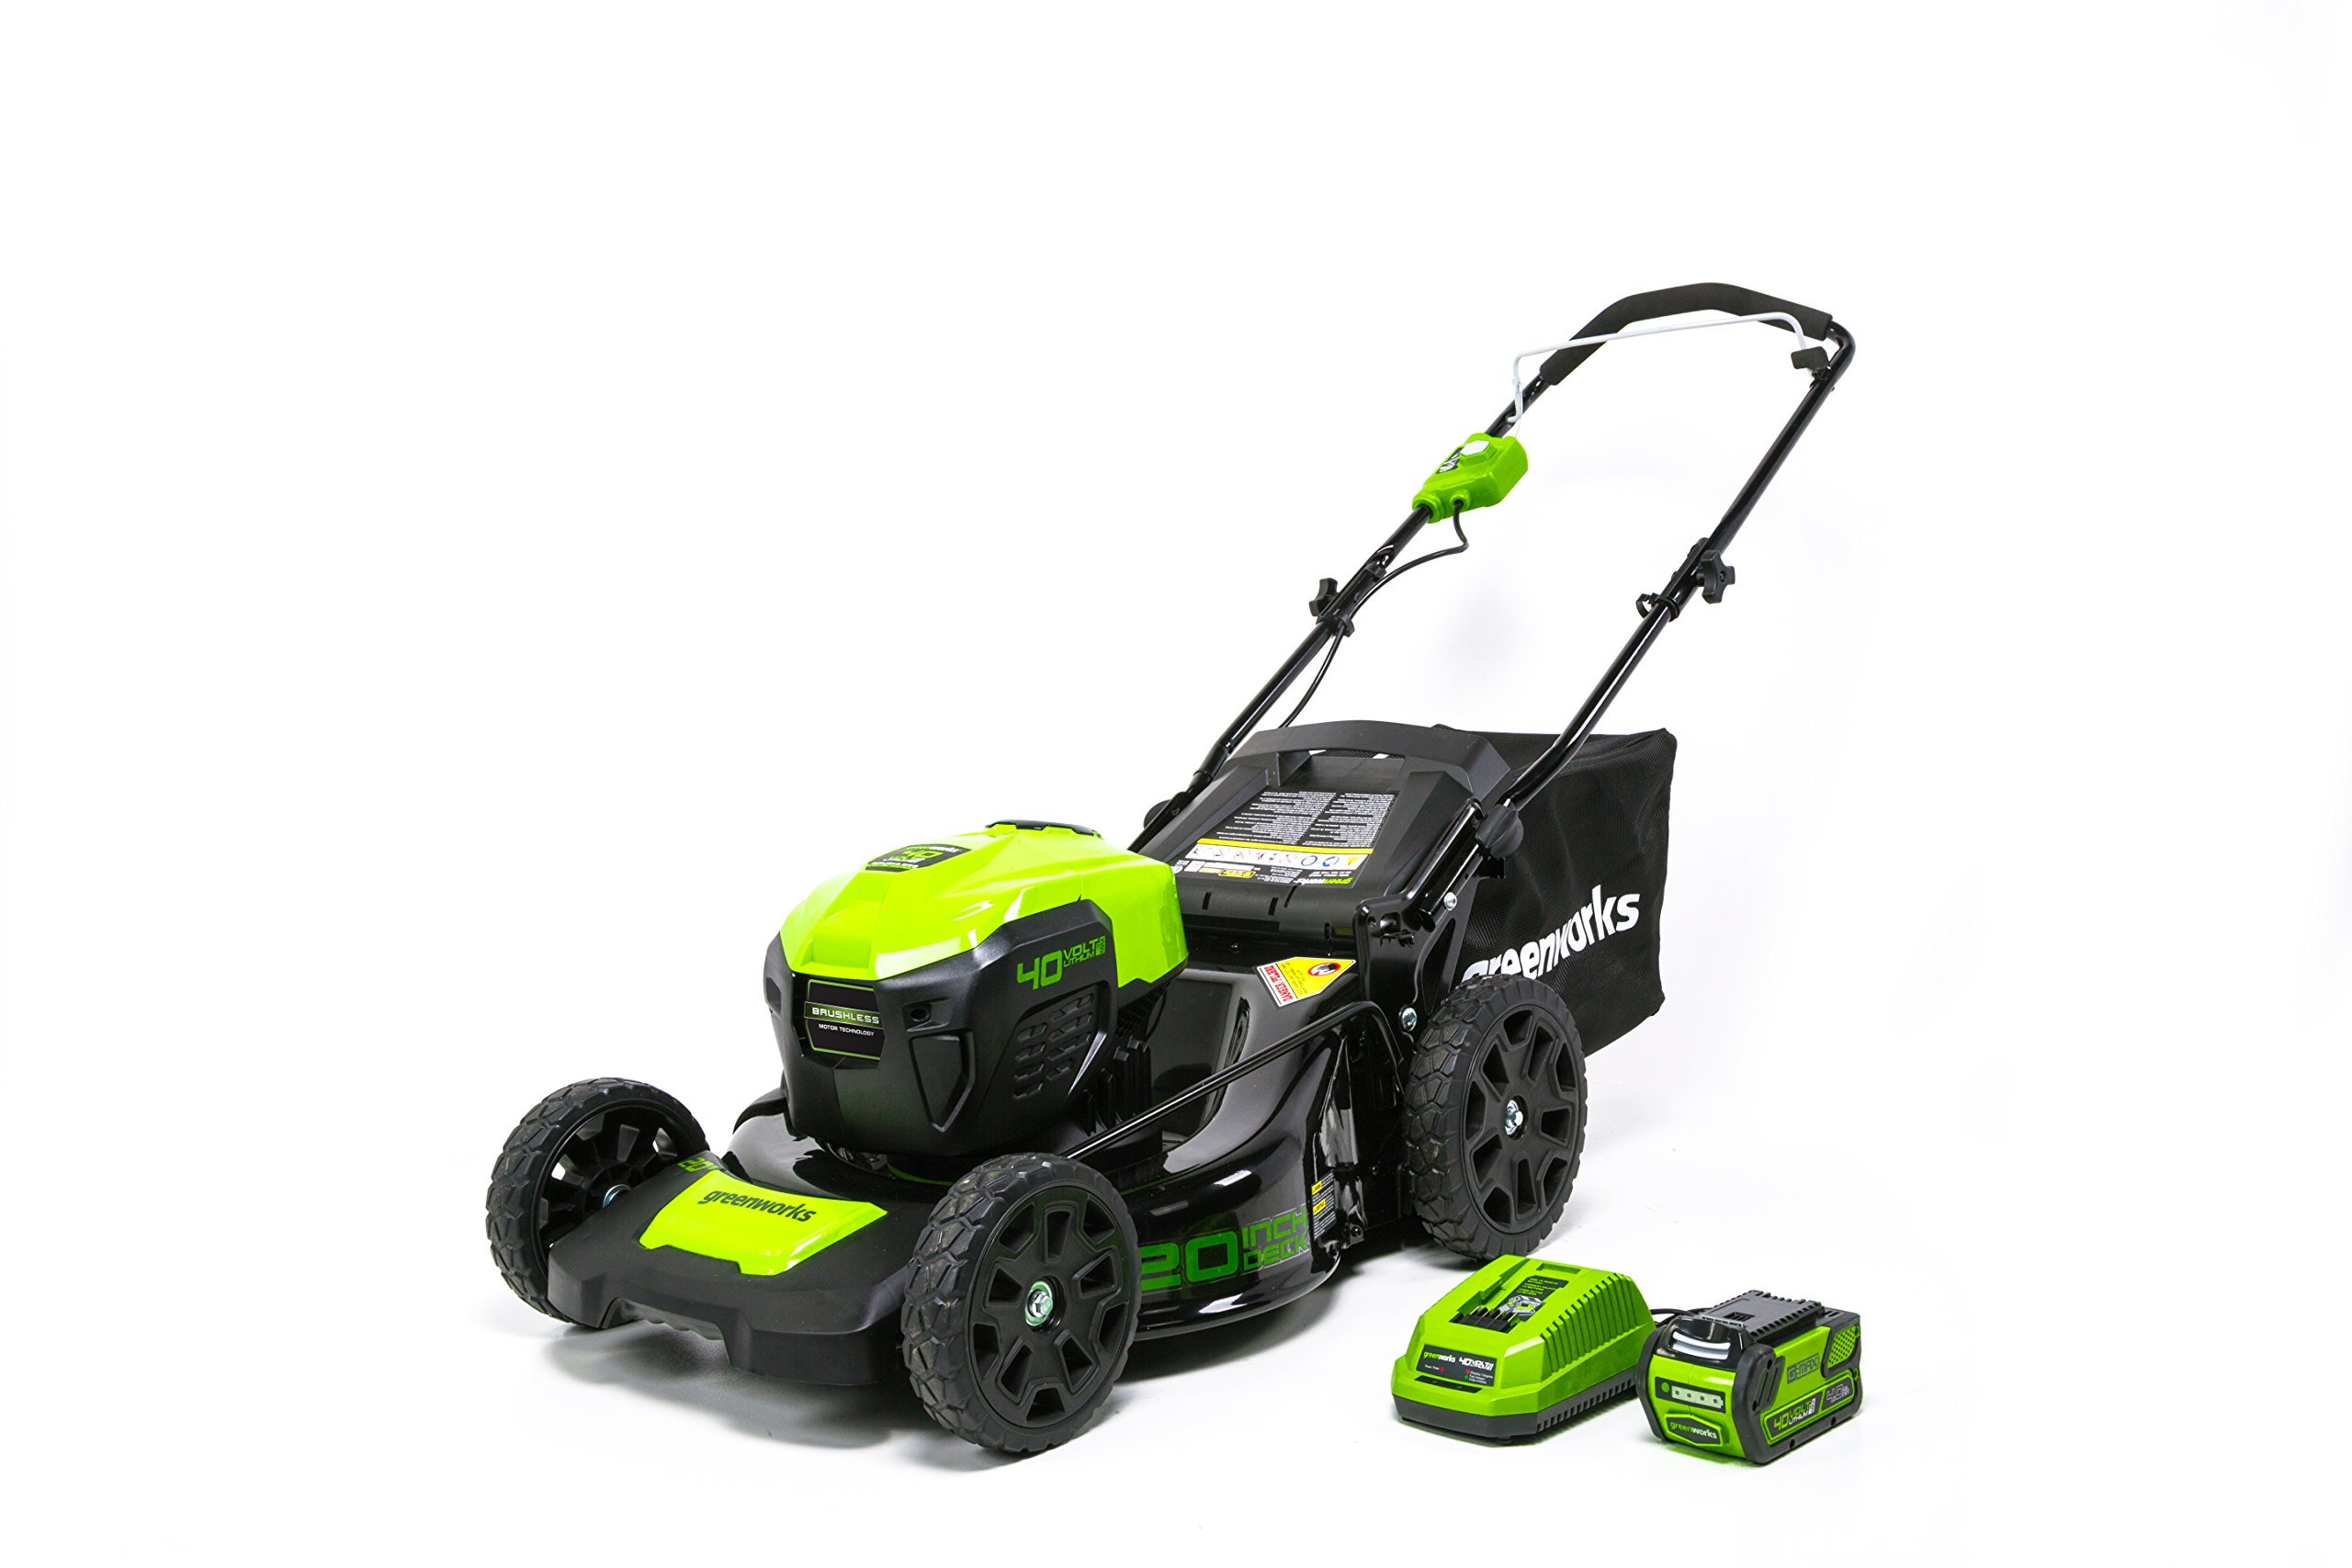 Greenworks g-max 40v 20-inch cordless 3-in-1 lawn mower with smart cut technology, (1) 4ah battery and charger included mo40l410 8 includes (1) max capacity 4 ah - 40v lithium battery , cutting heights - 5 position durable 20'' steel deck lets you mulch, bag, or side discharge allowing you to maintain your yard the way you want it. This lawn mower is not self-propelled innovative smart cut technology automatically increases the speed of the blade when more power is needed